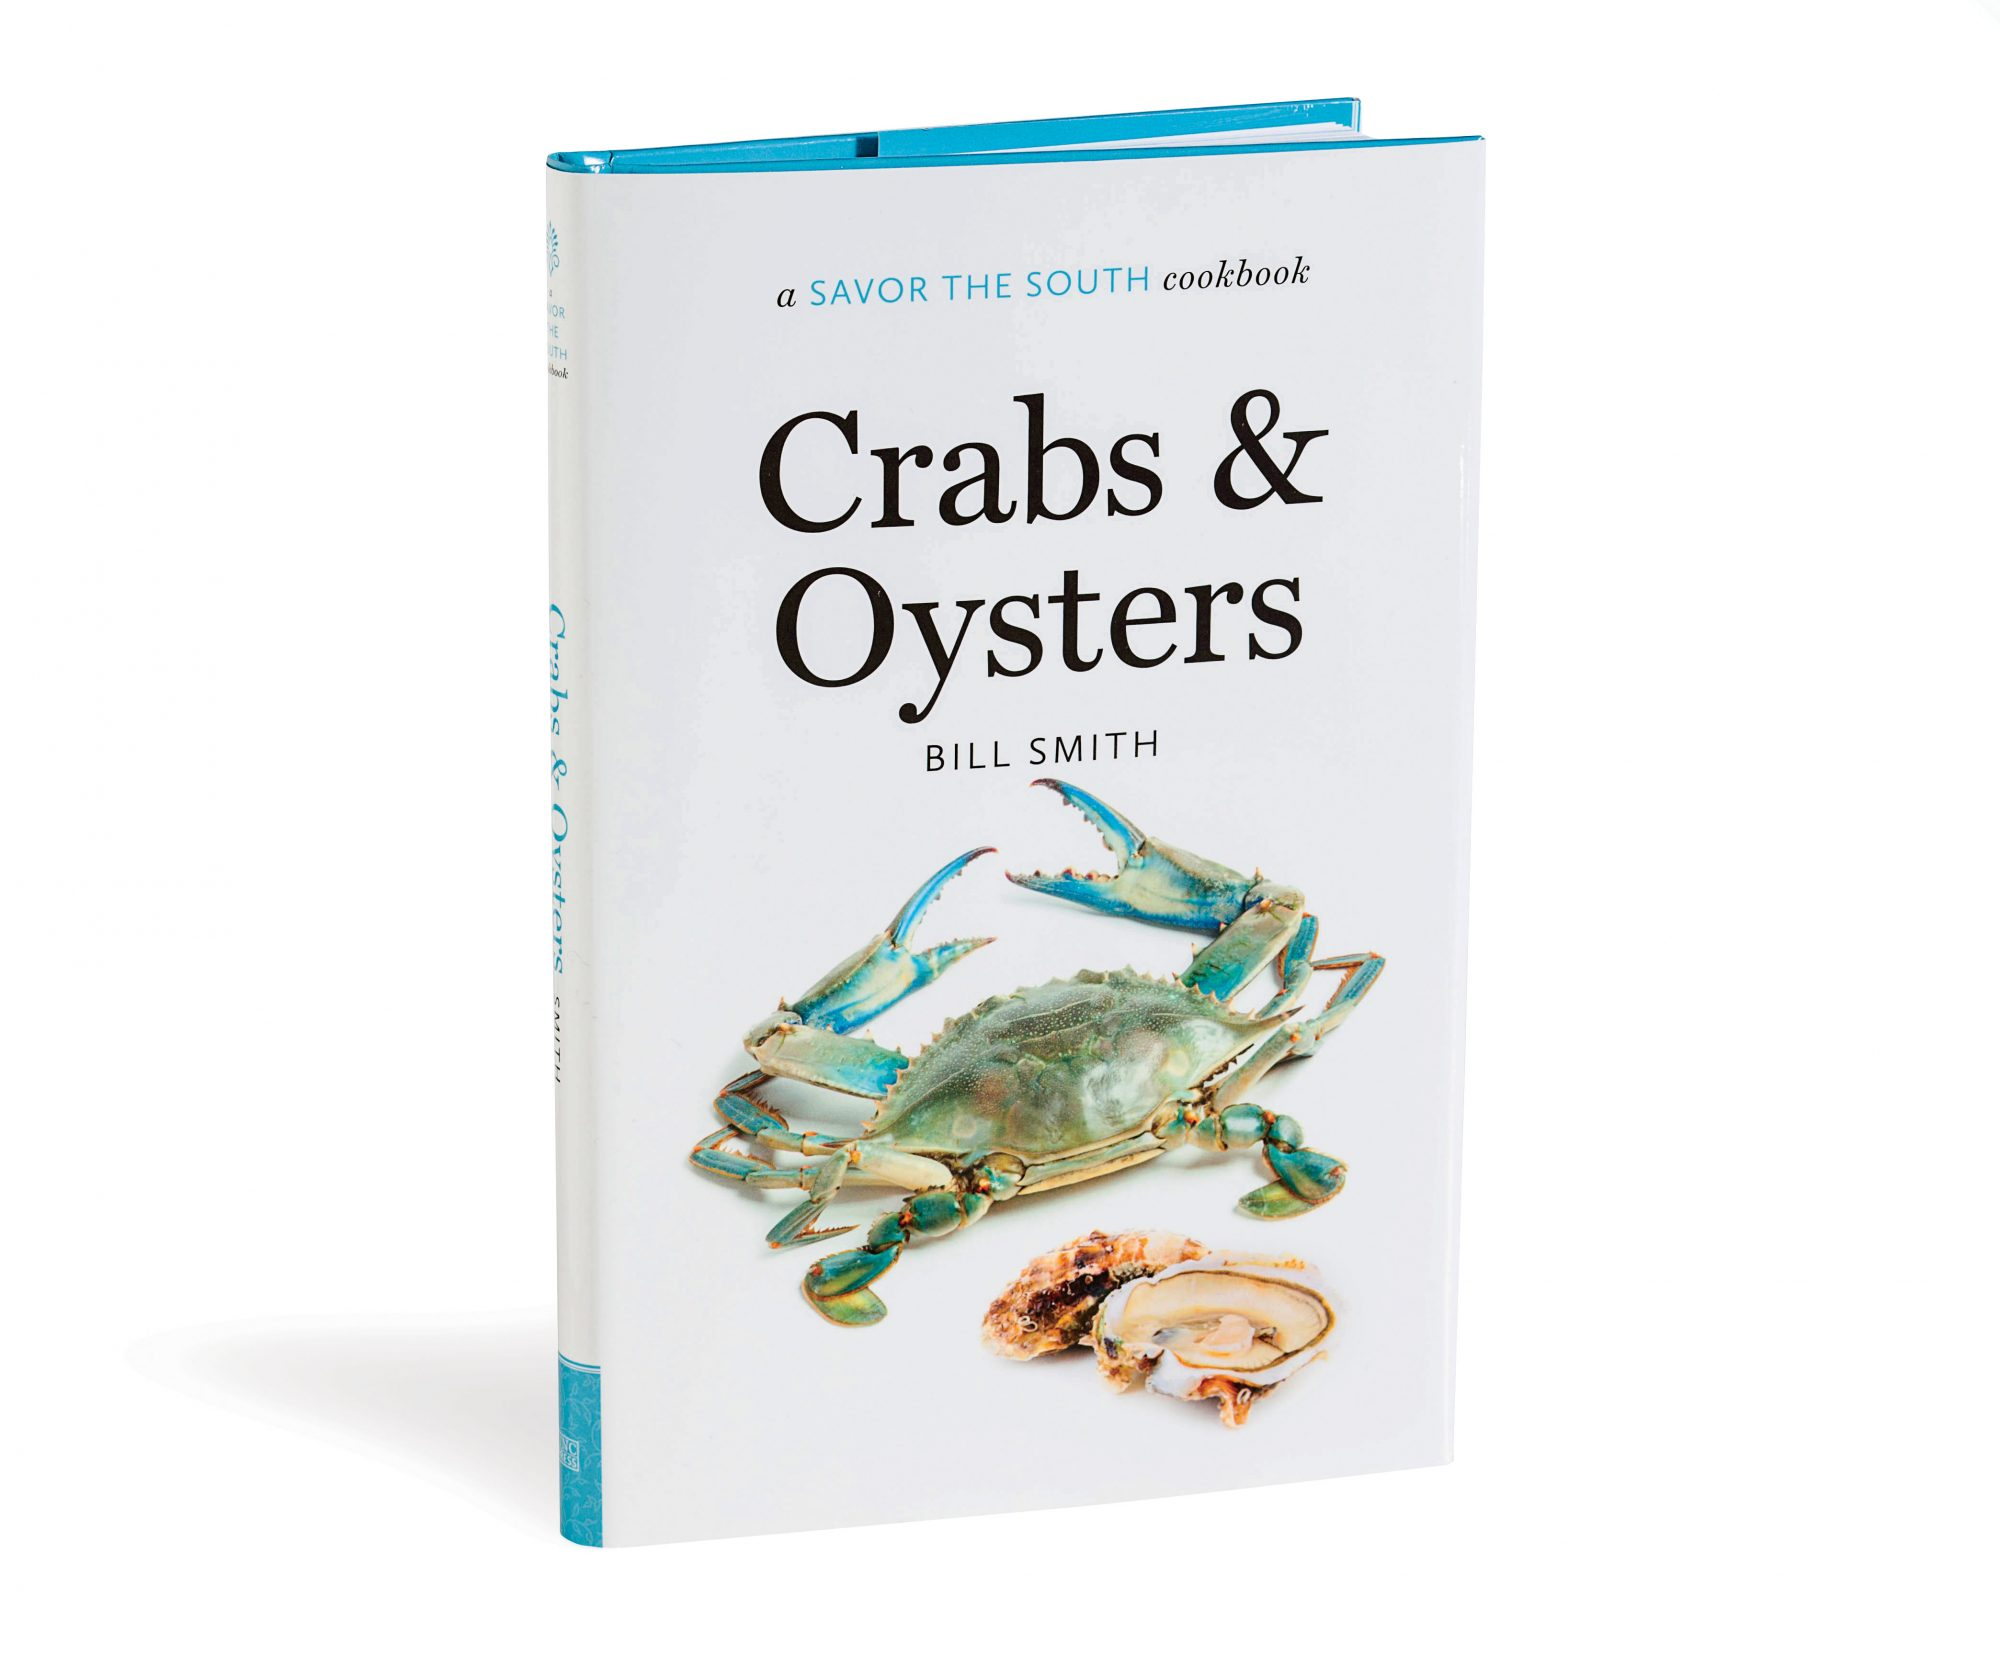 Crabs & Oysters by Bill Smith